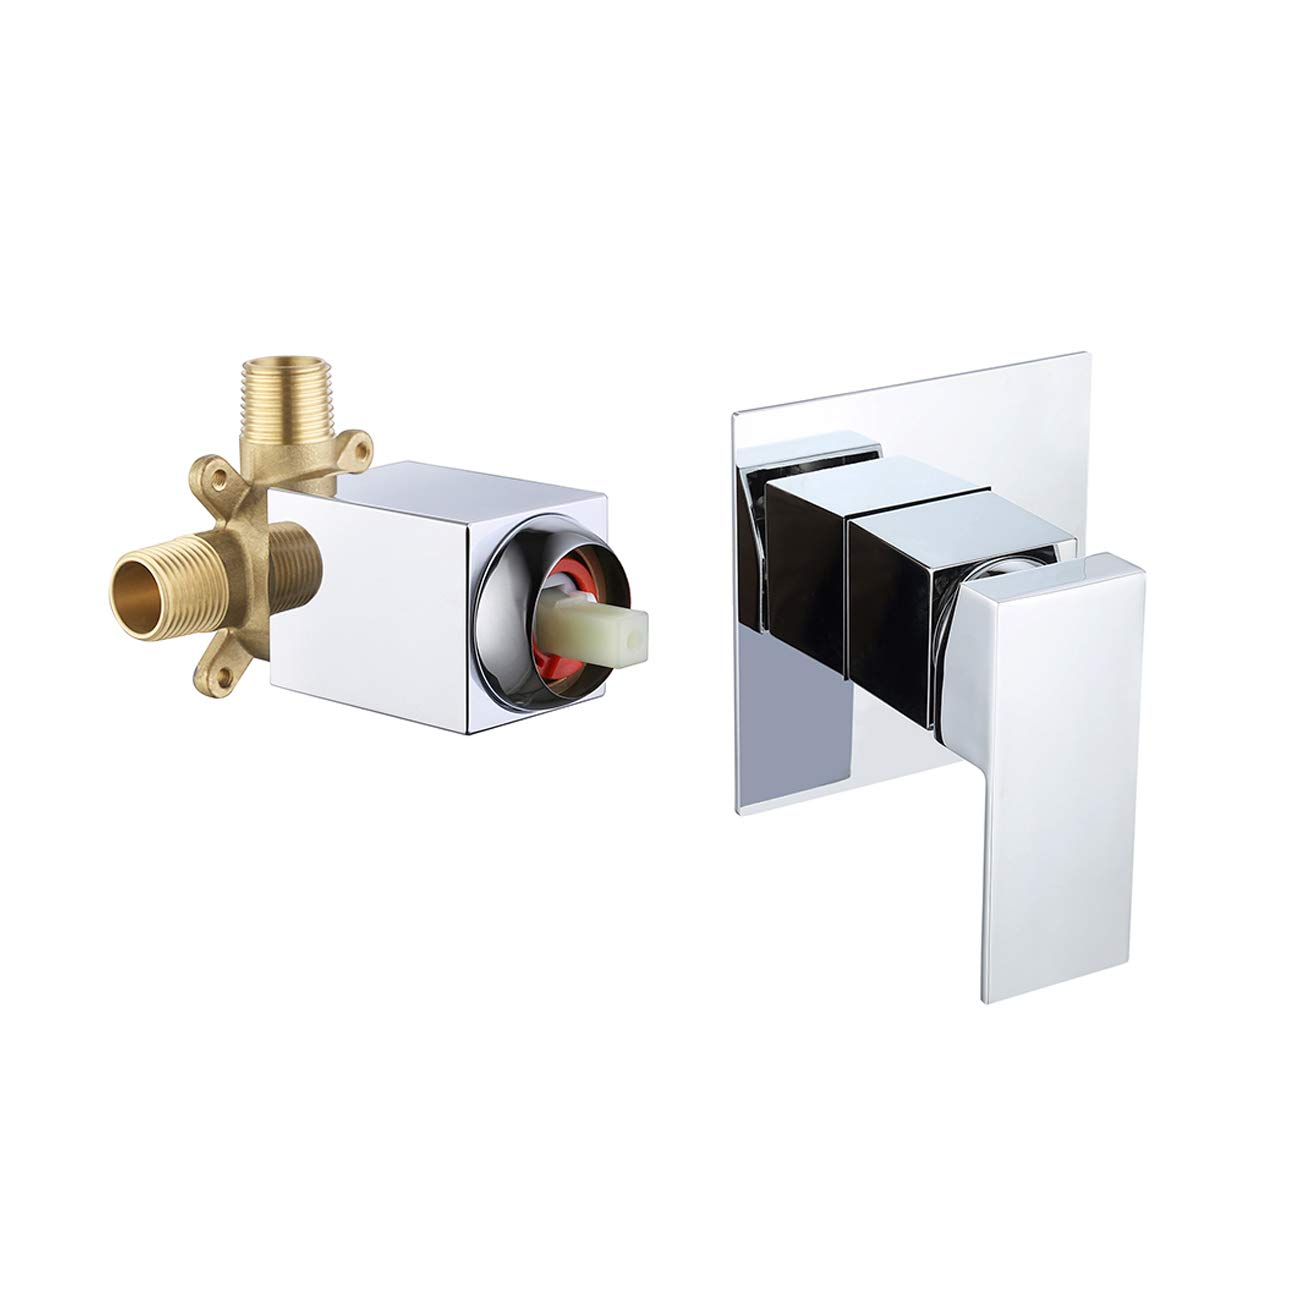 KES BRASS Shower Faucet Body Valve and SOLID Stainless Steel Trim Square Concealed Replacement for Bathroom Showering System, Polished Chrome L6711 by KES